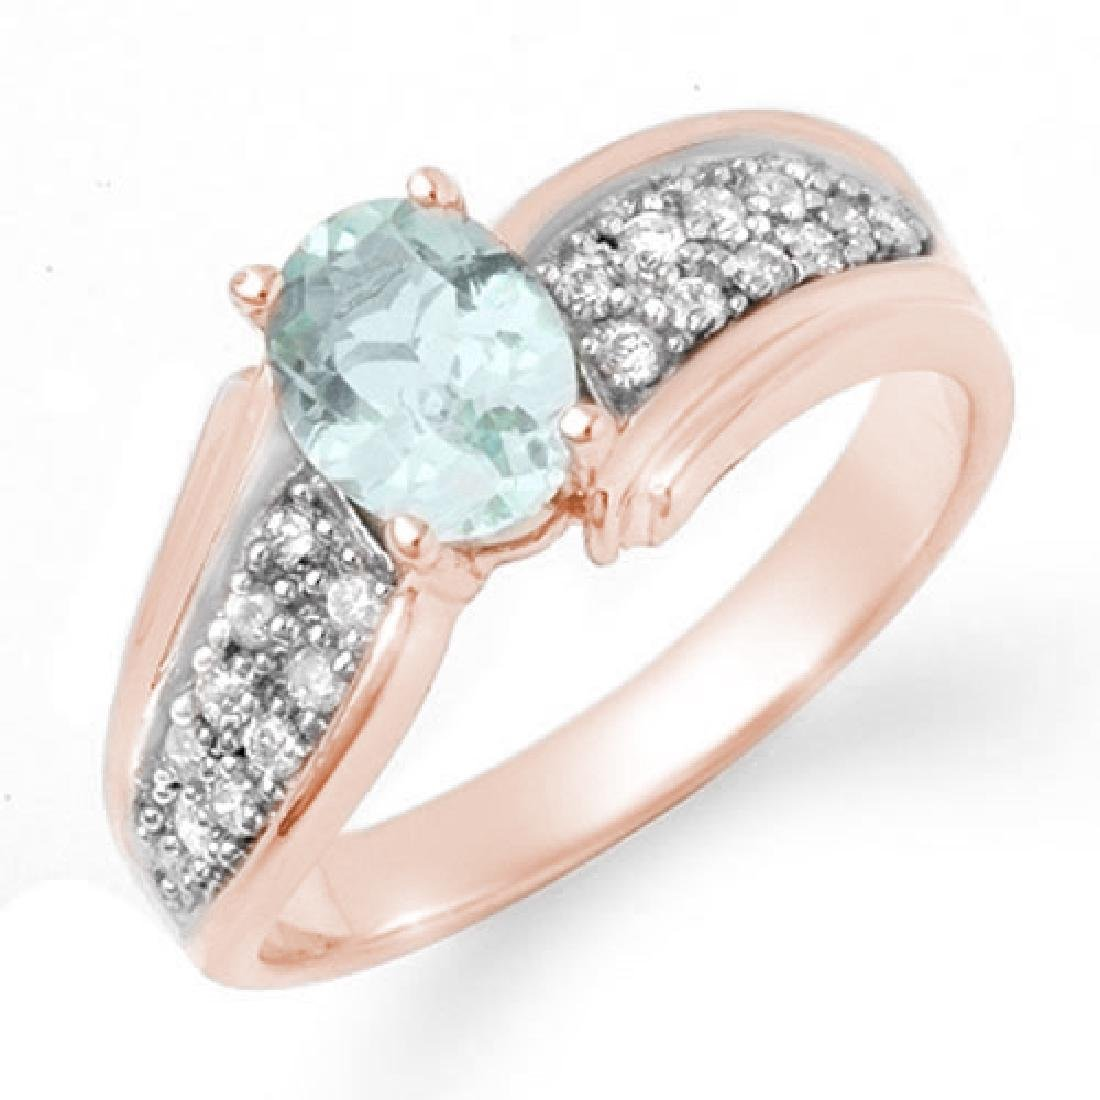 1.20 CTW Aquamarine & Diamond Ring 14K Rose Gold